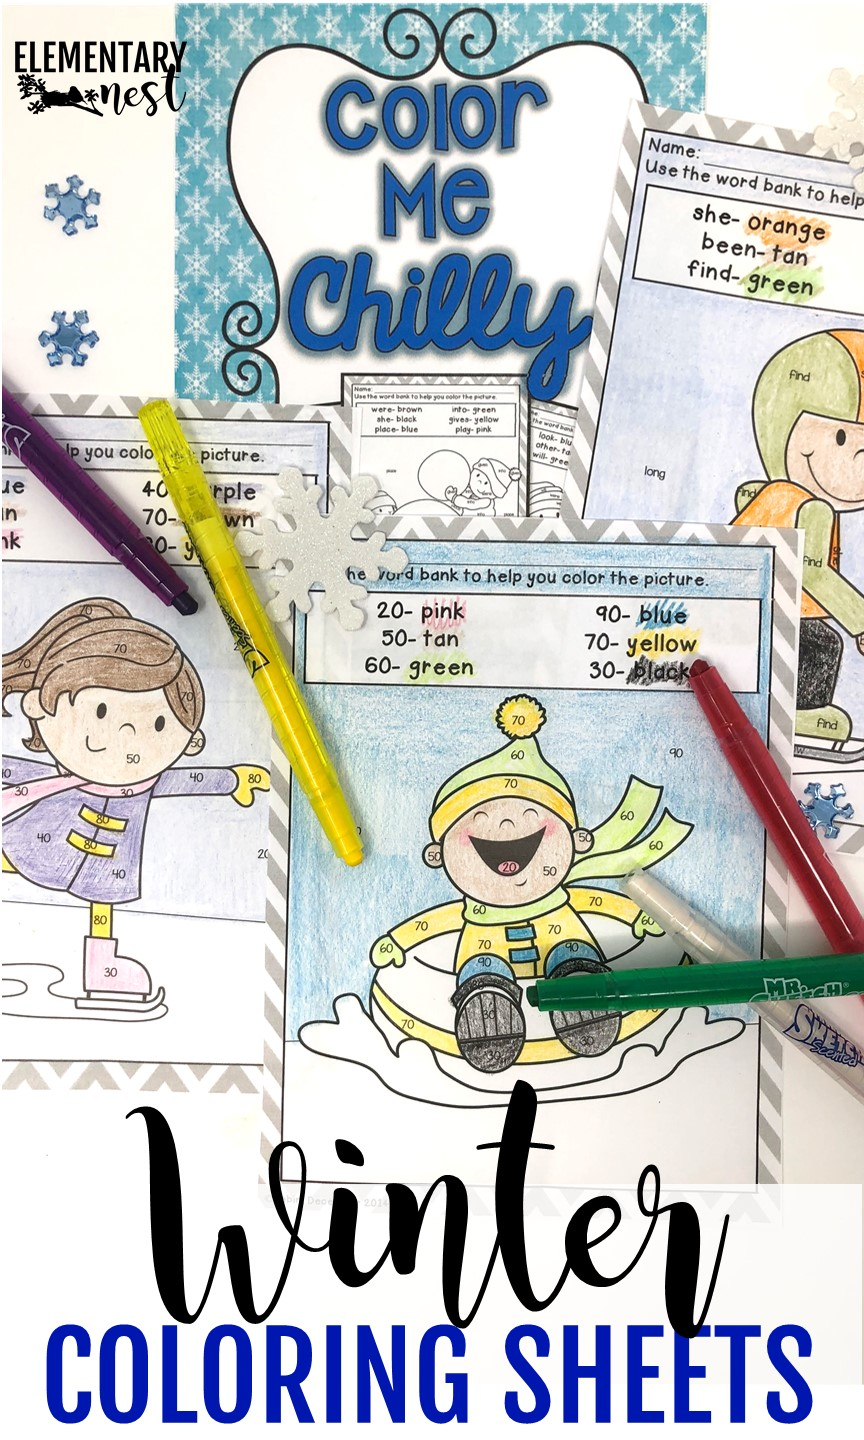 Winter-themed coloring sheets for elementary students.